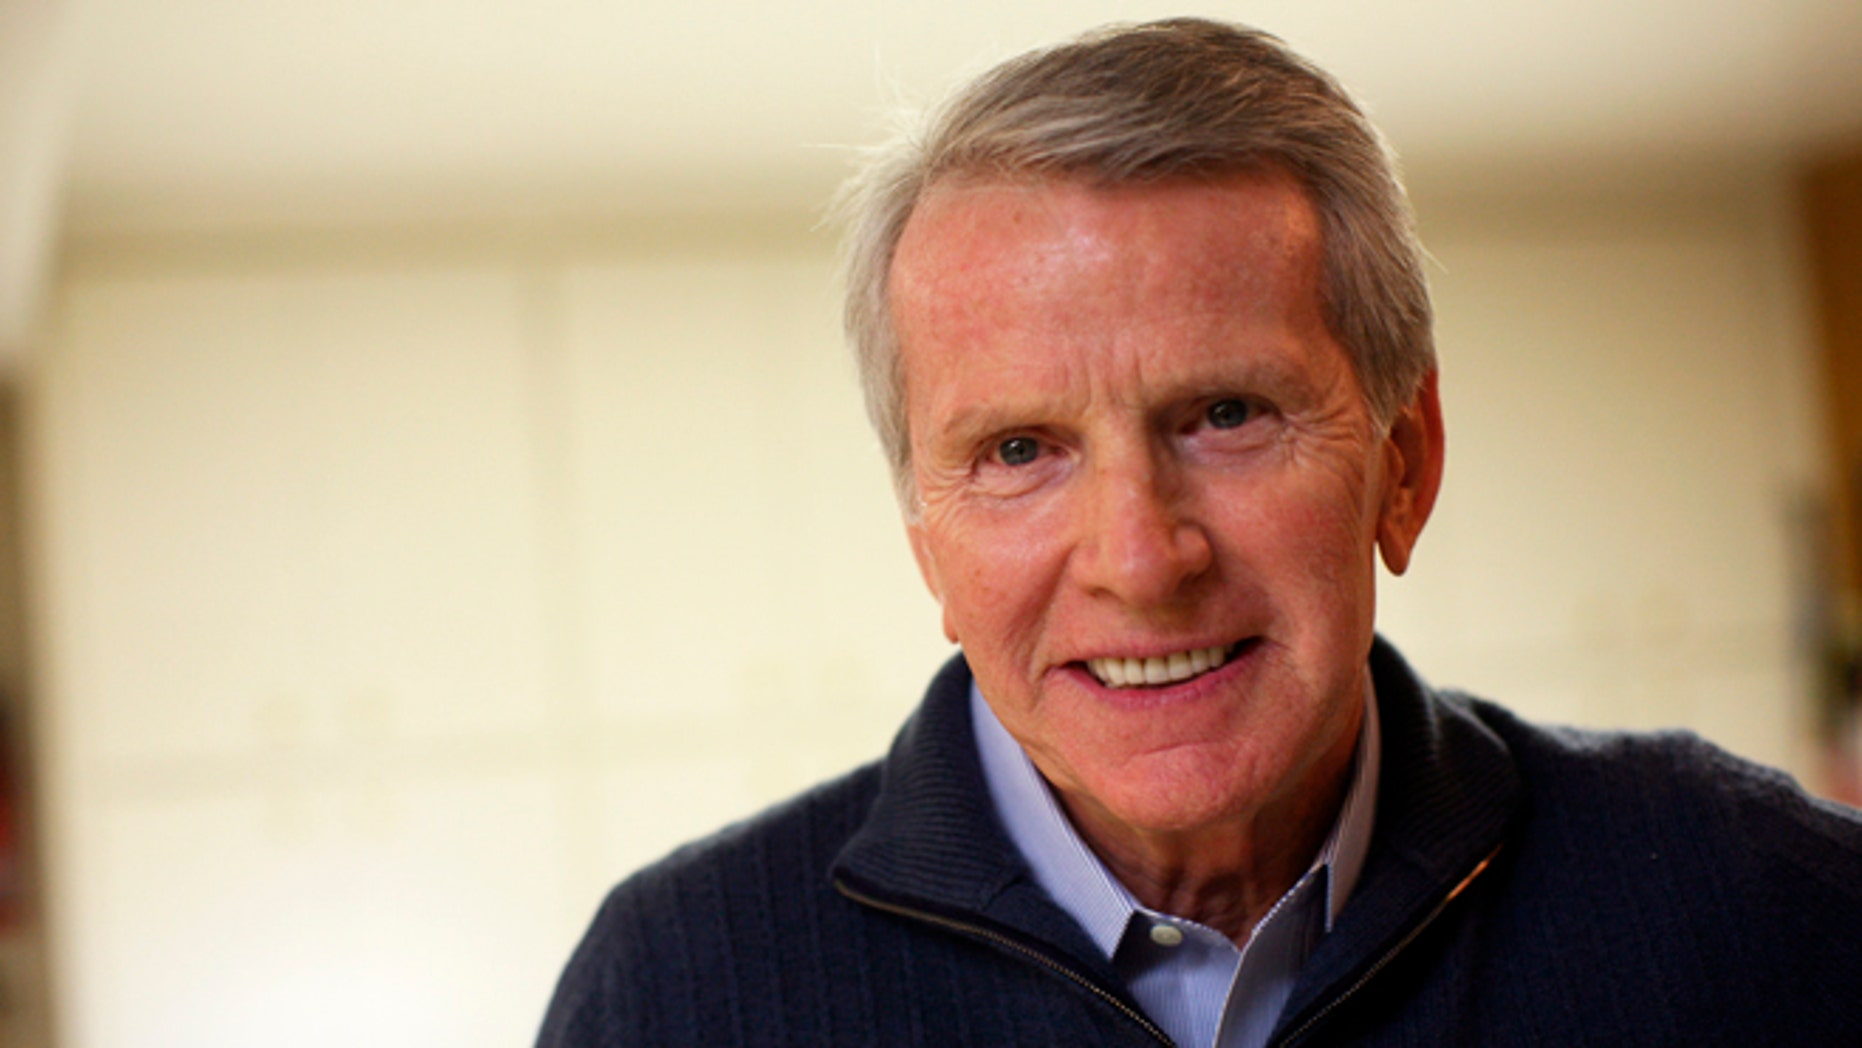 Nov. 11, 2011: Hewlett Packard executive chairman and Kleiner Perkins managing partner Ray Lane poses at his home in Atherton, California.